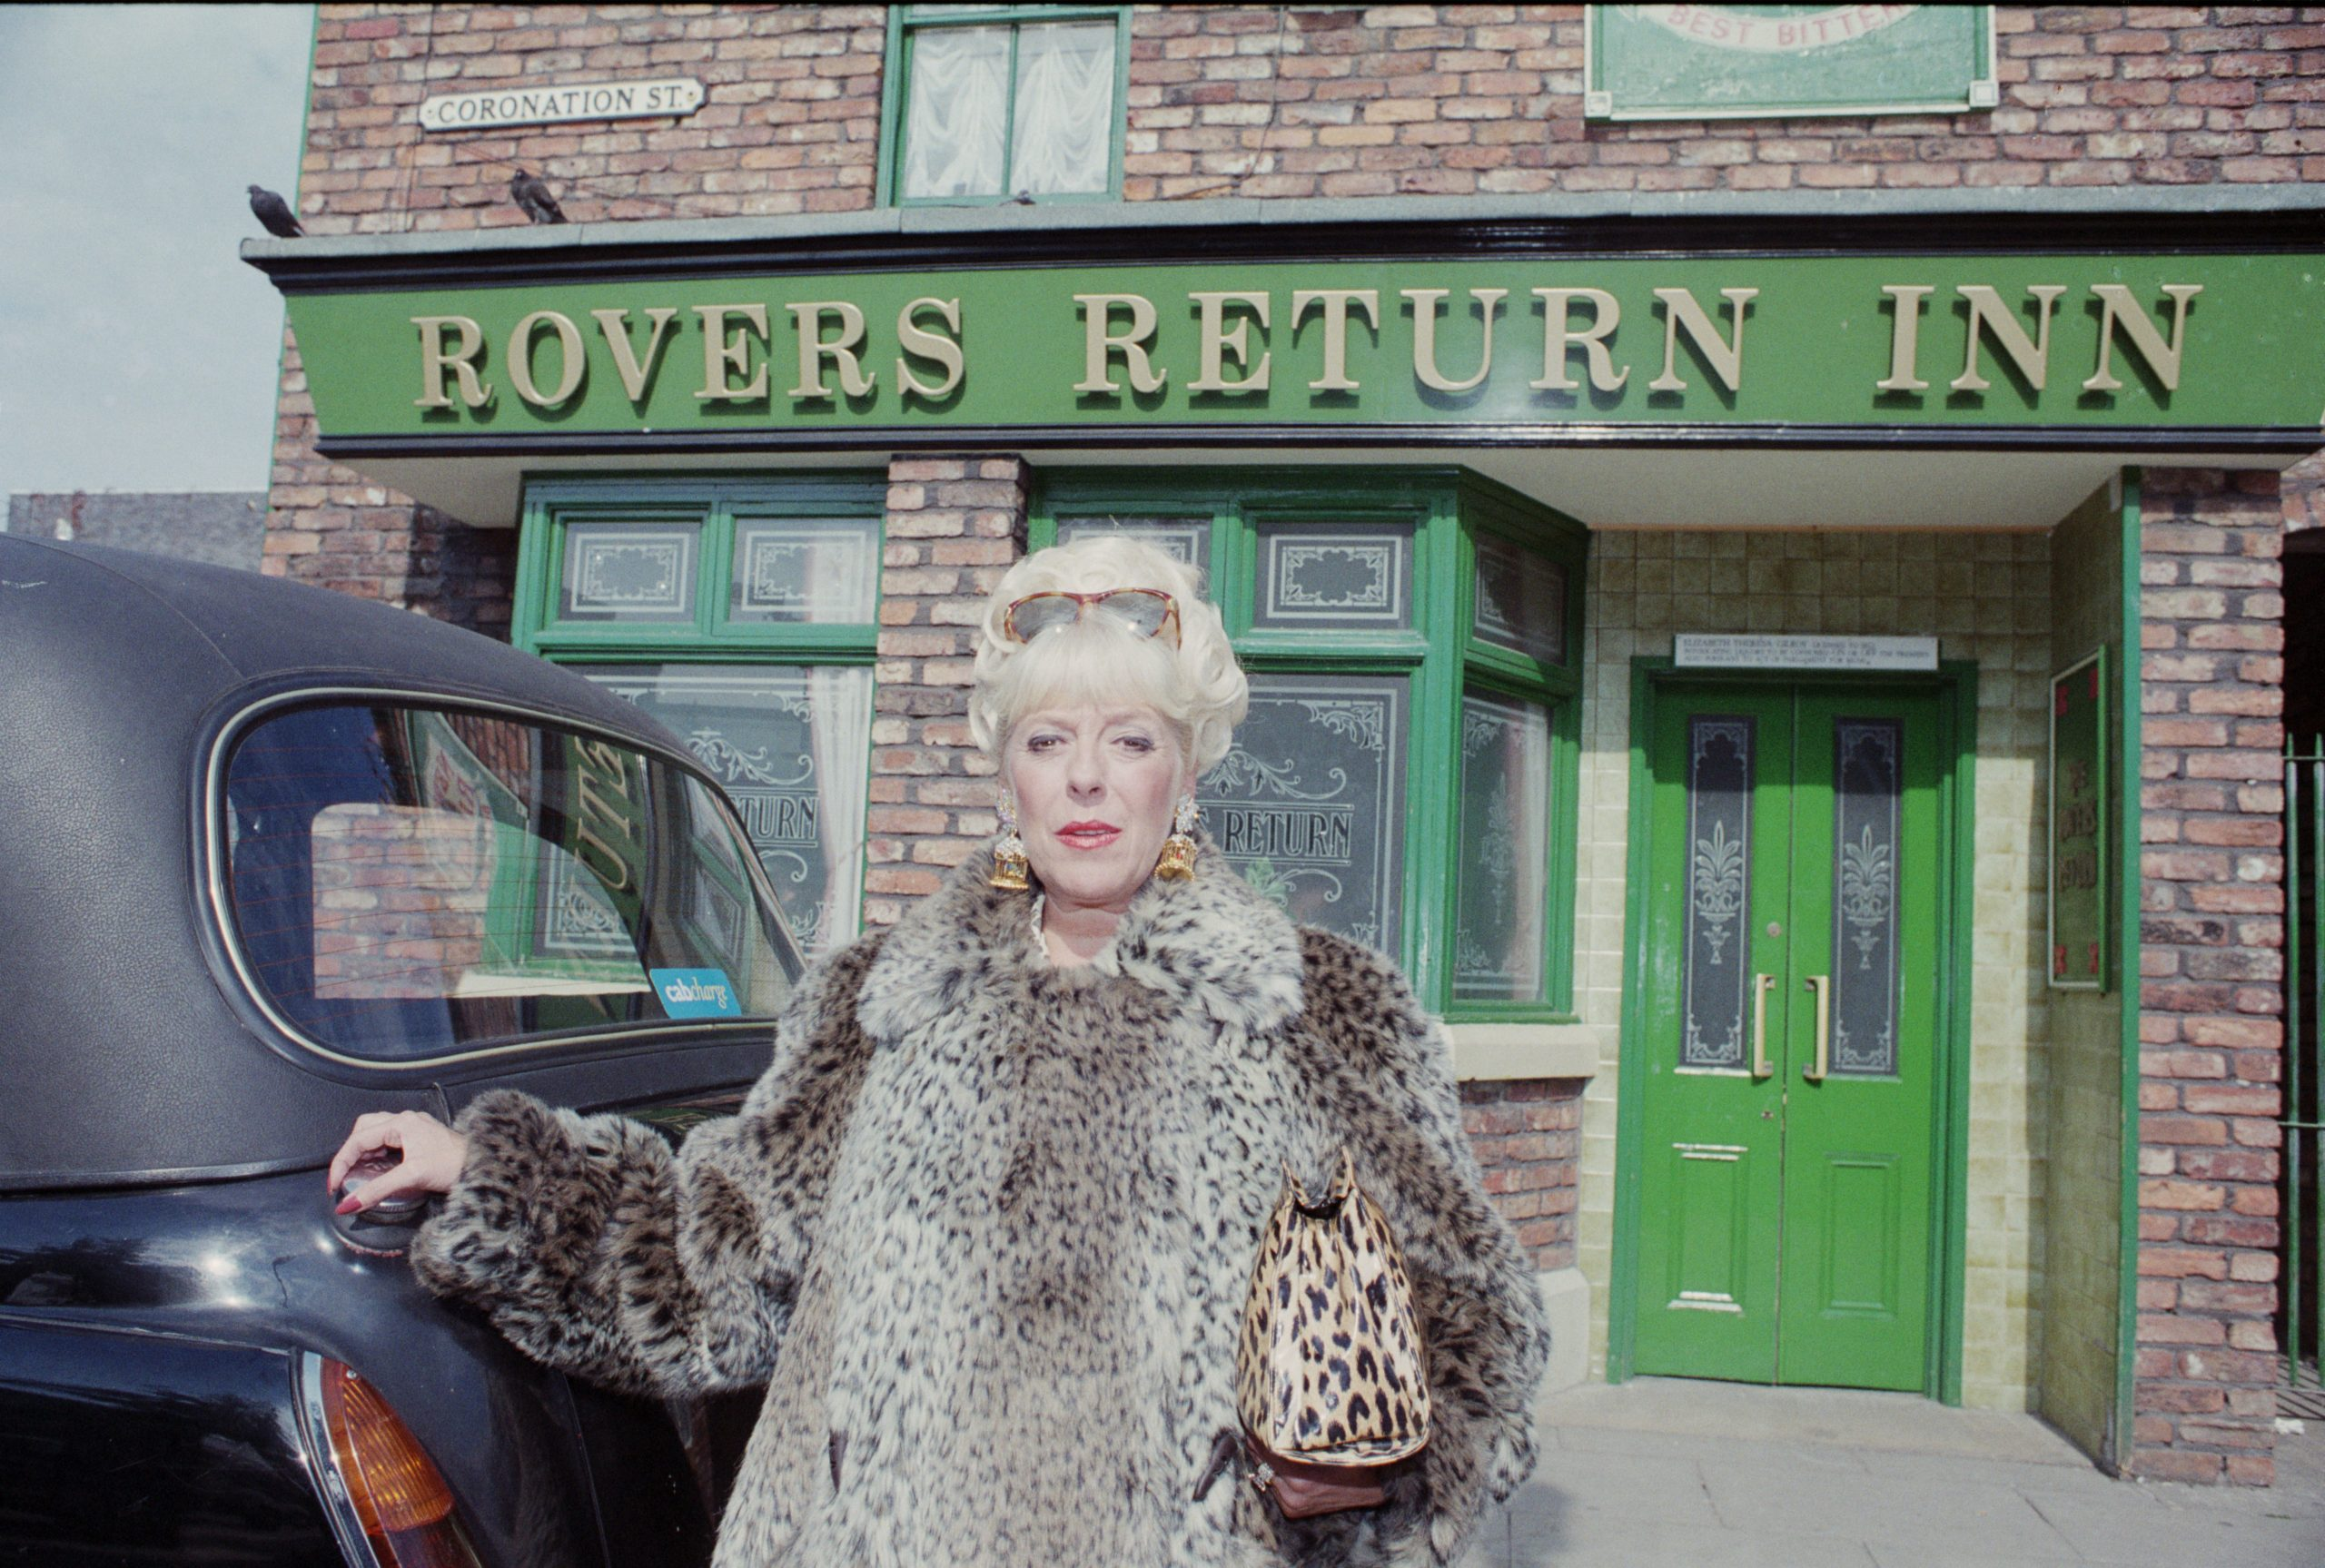 Classic Coronation Street: What's coming up in this week's episodes?